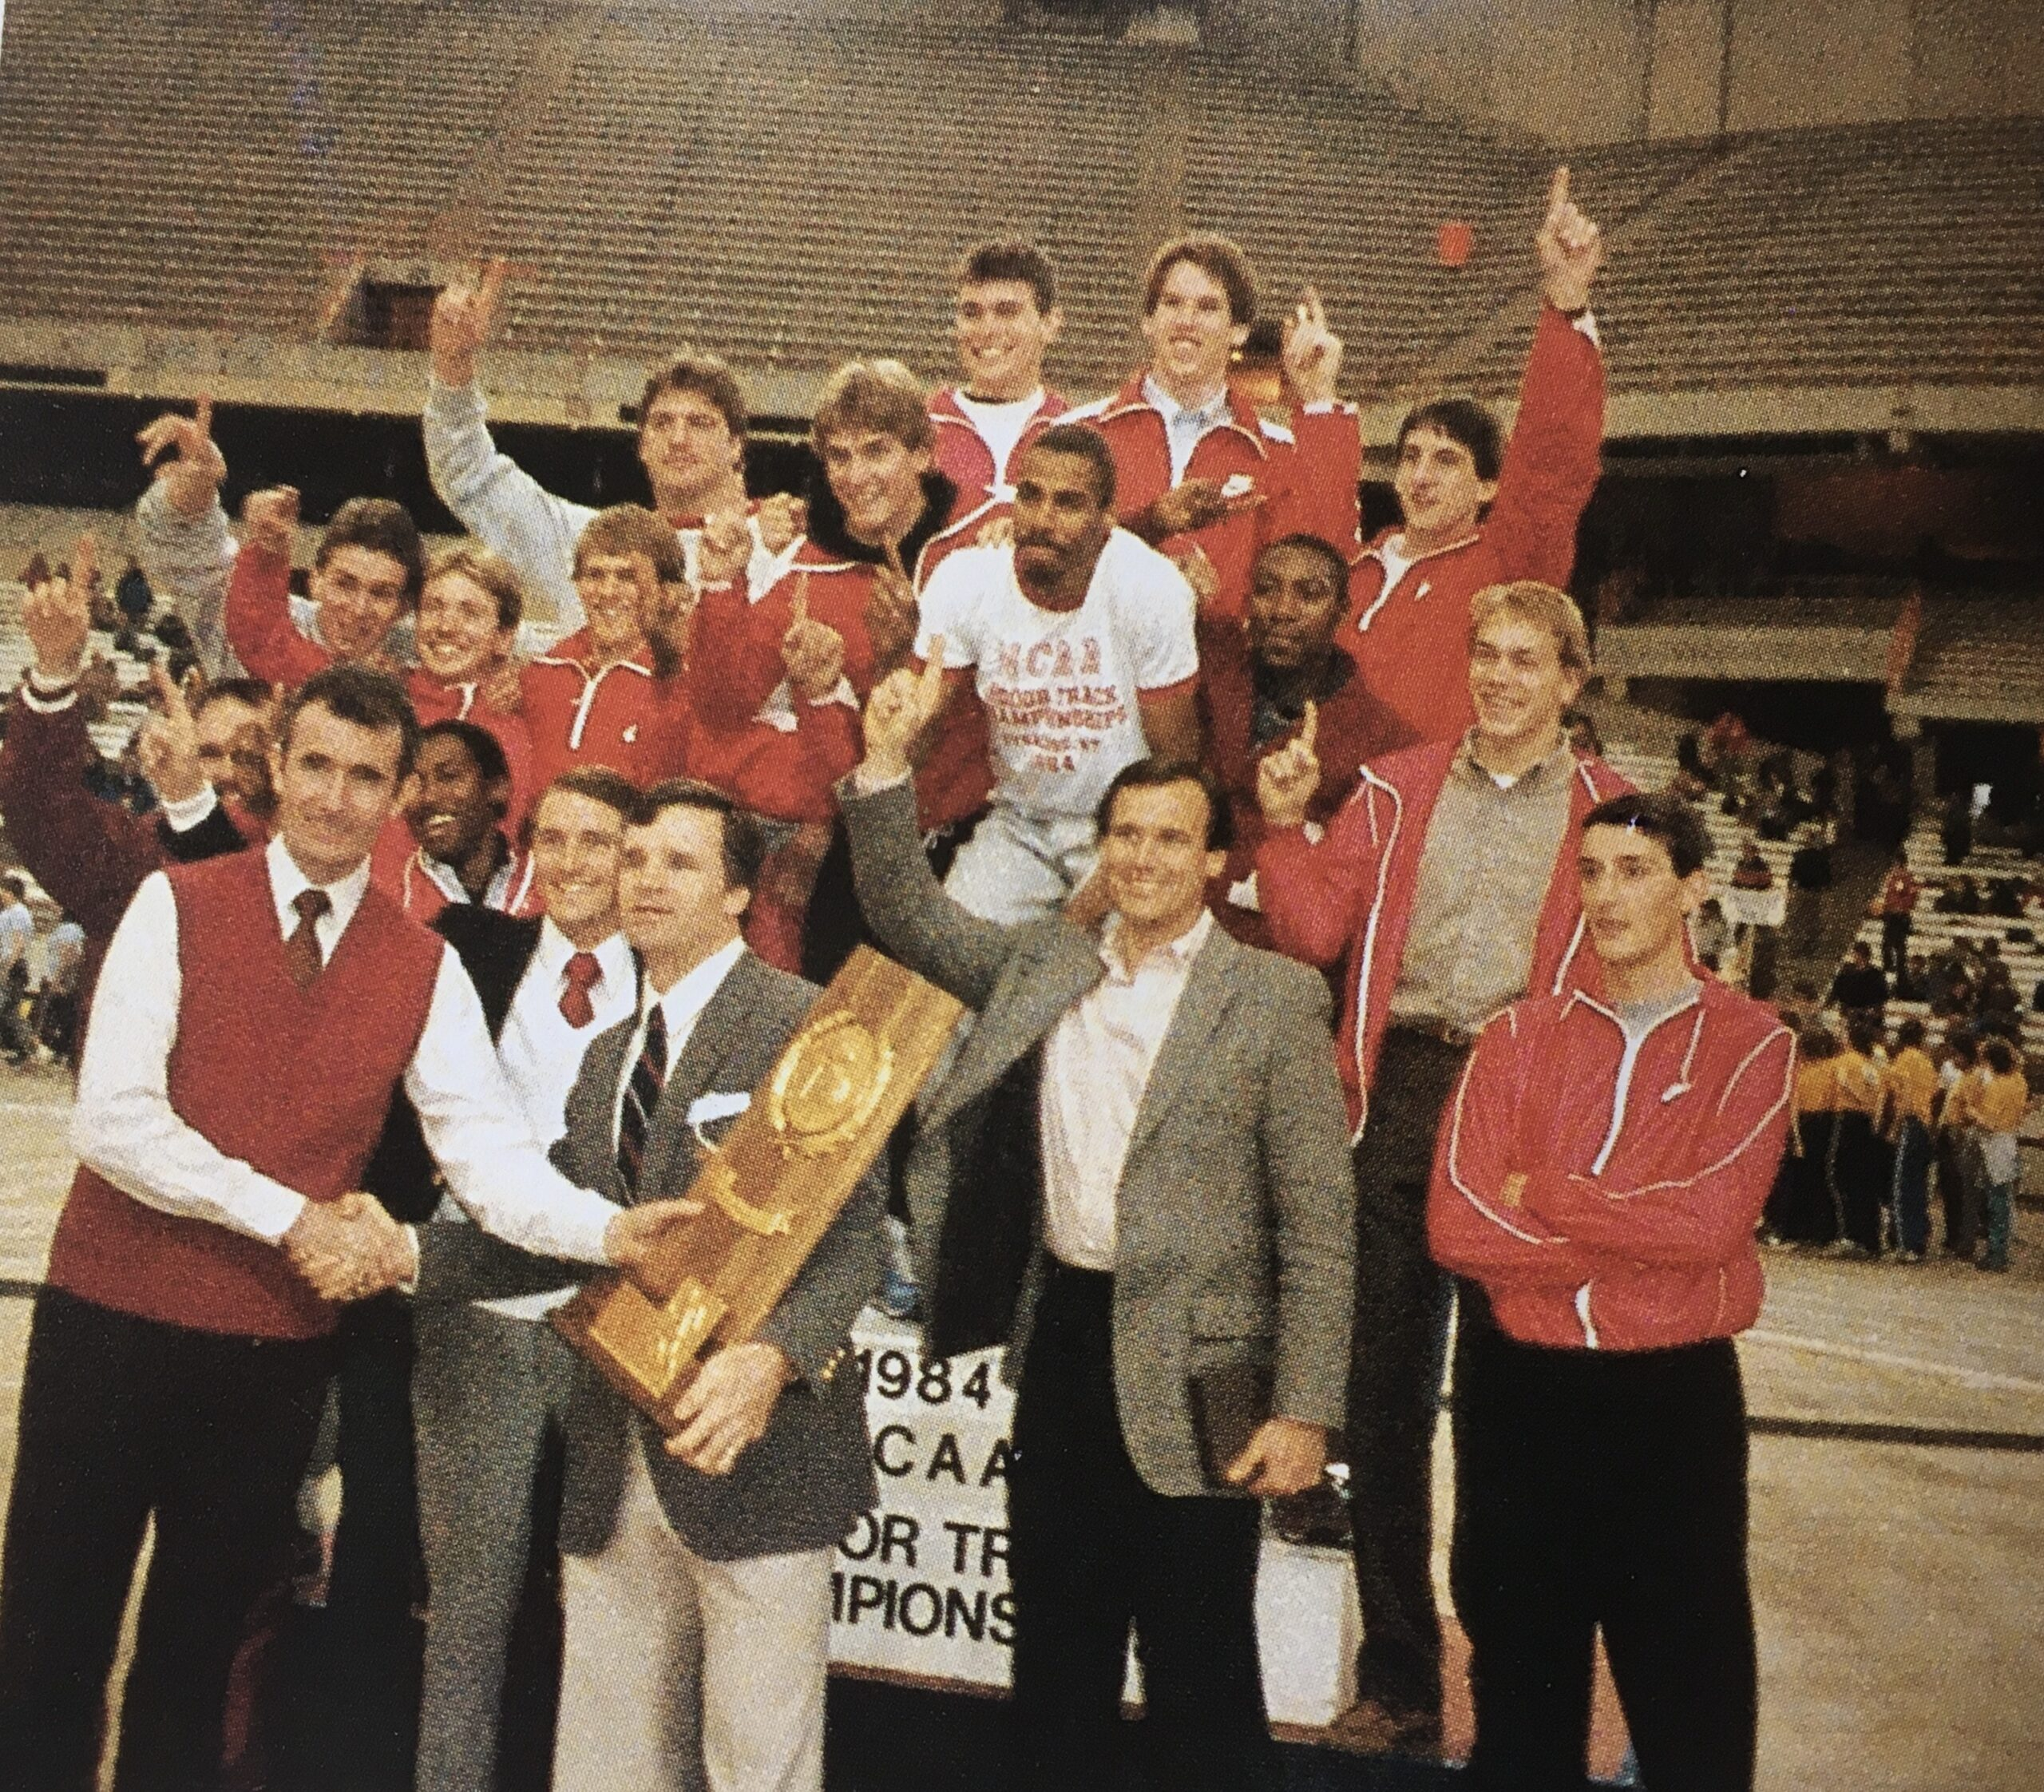 THE VERY FIRST NCAA TITLE - 1984 INDOORS